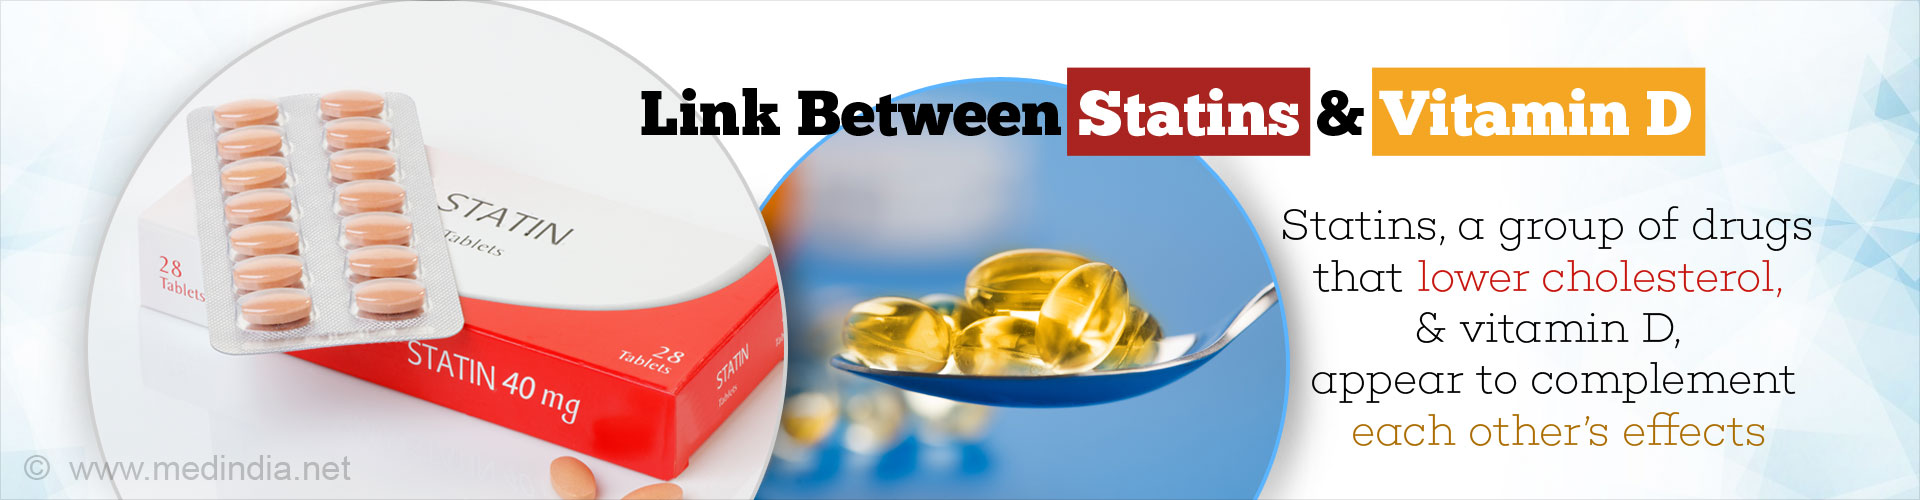 Link Between Statins and Vitamin D Statins, a group of drugs that lower cholesterol, & vitamin D, appear to complement each other's effects